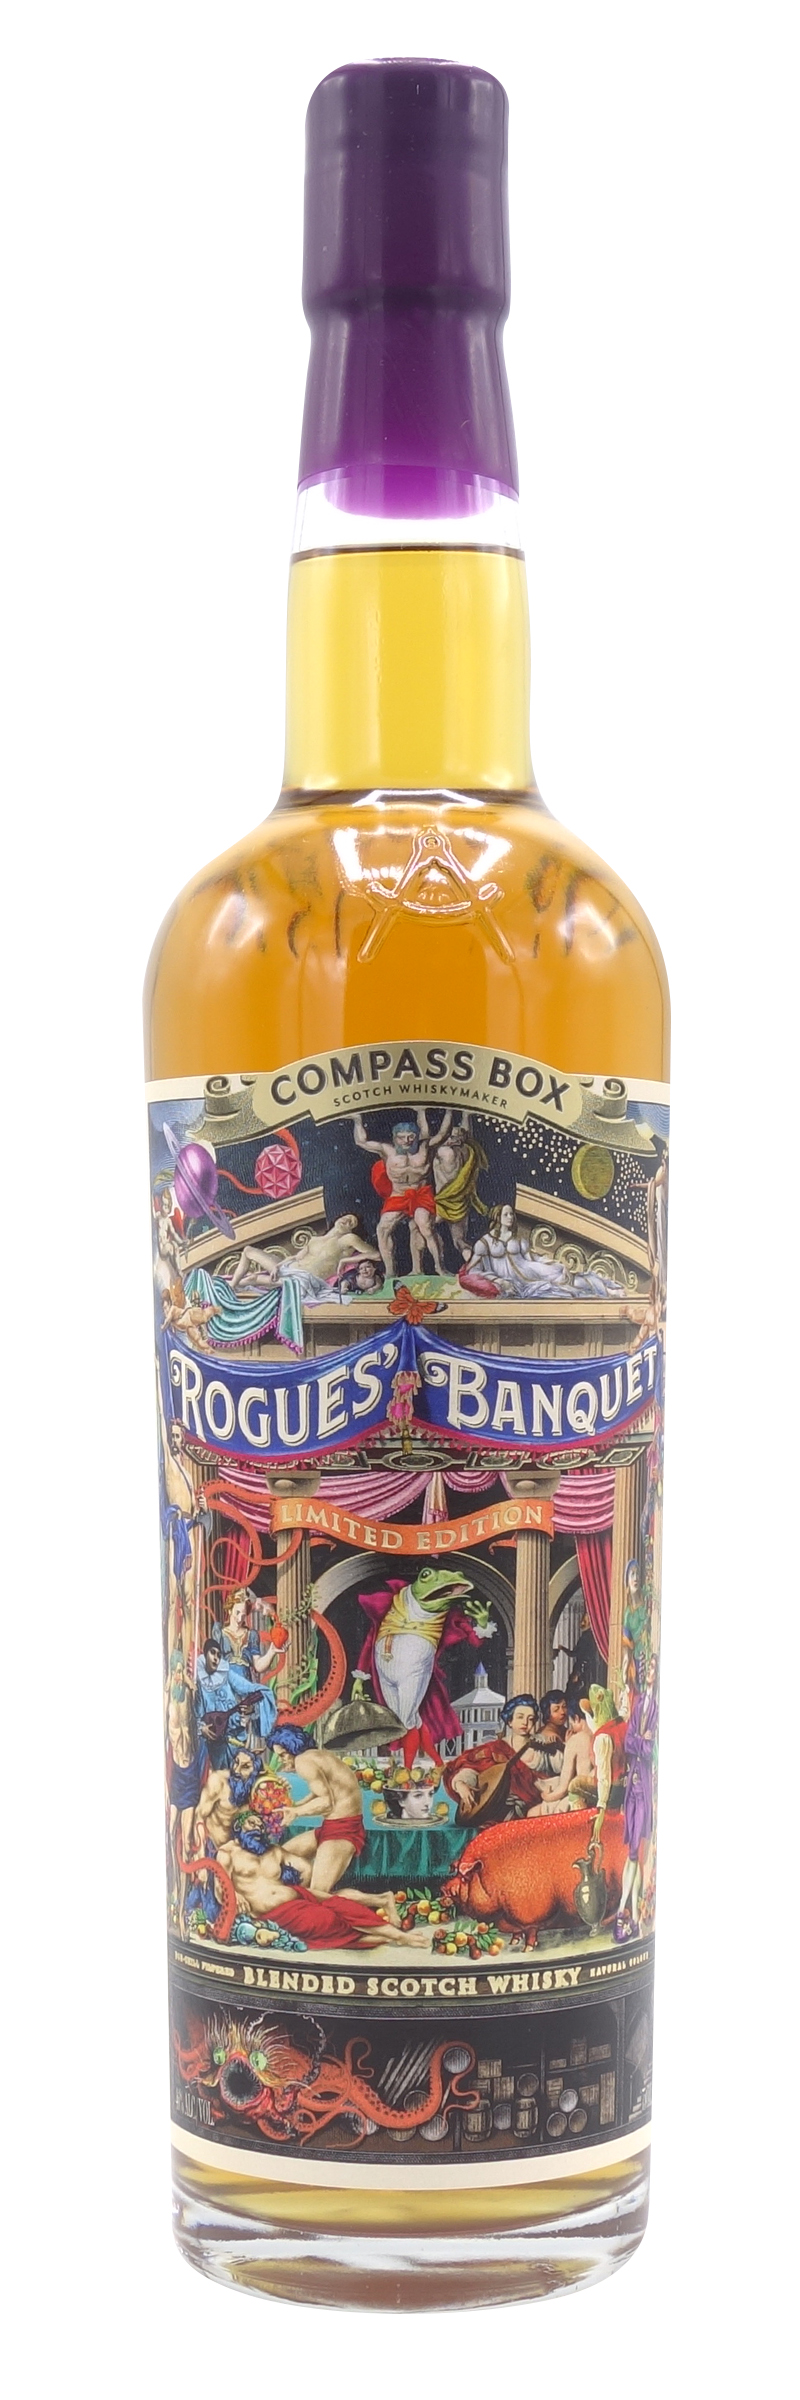 COMPASS BOX BLENDED SCOTCH WHISKY <br>ROGUES' BANQUET